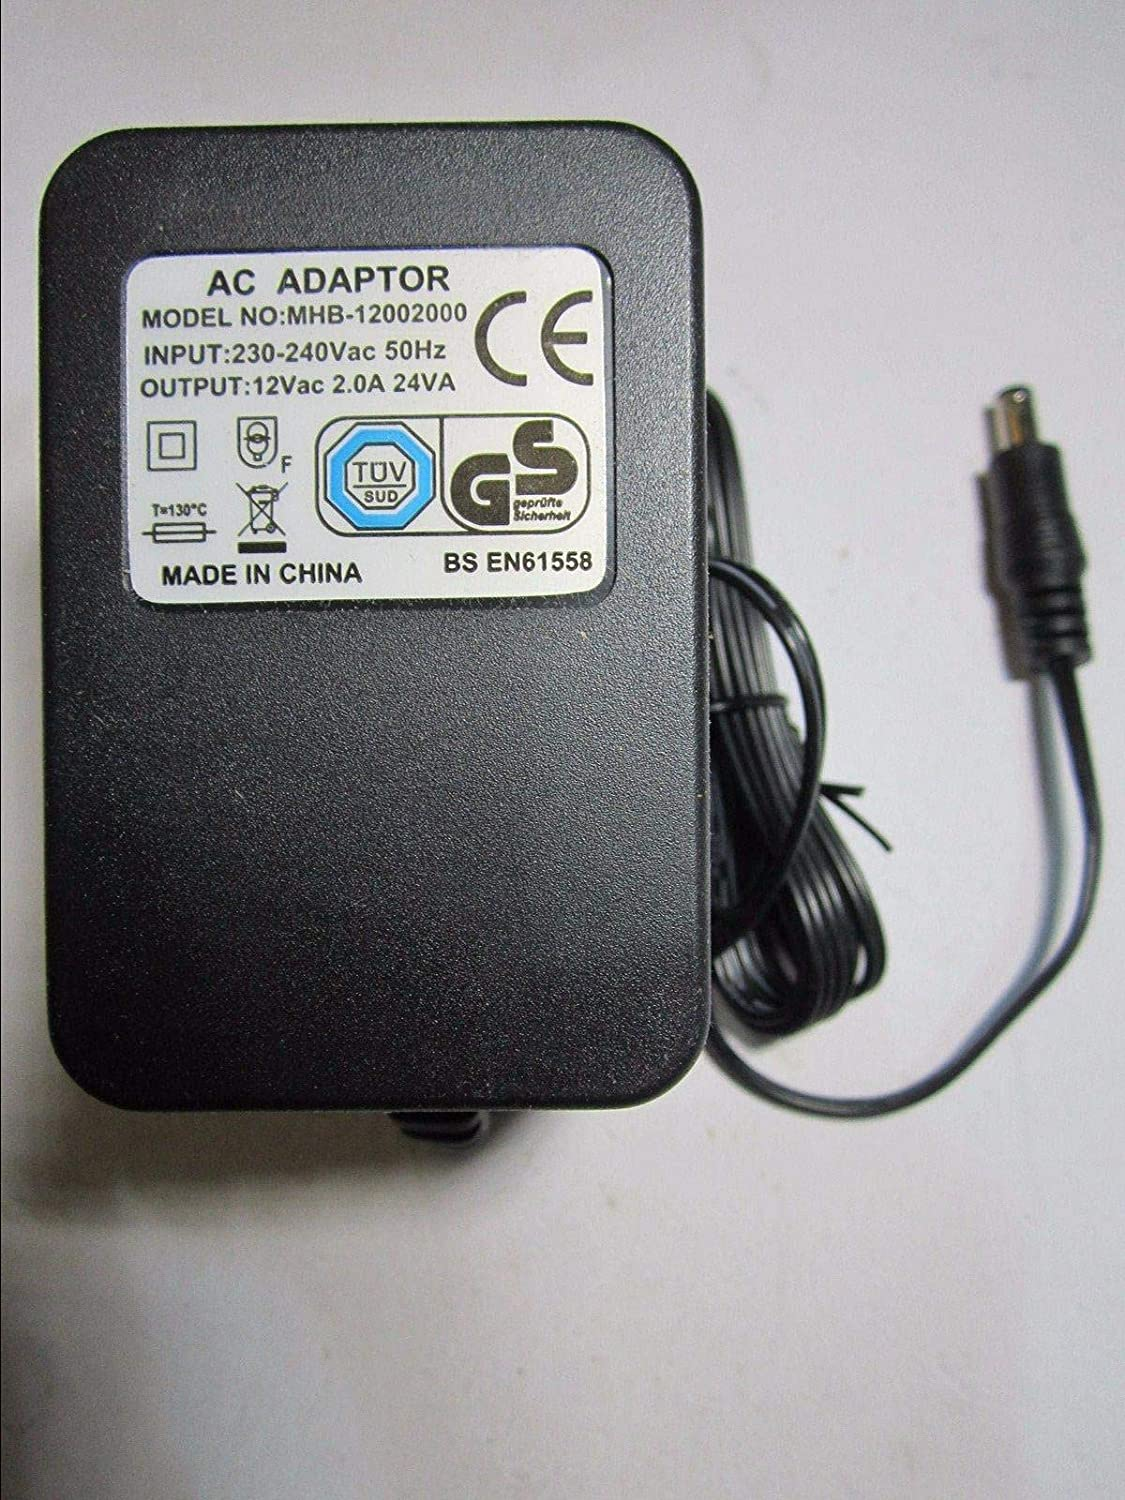 UK 12V AC 1000mA 1A AC Adaptor Power Supply for model MW41-1201000UKA ACAdaptorsRUS